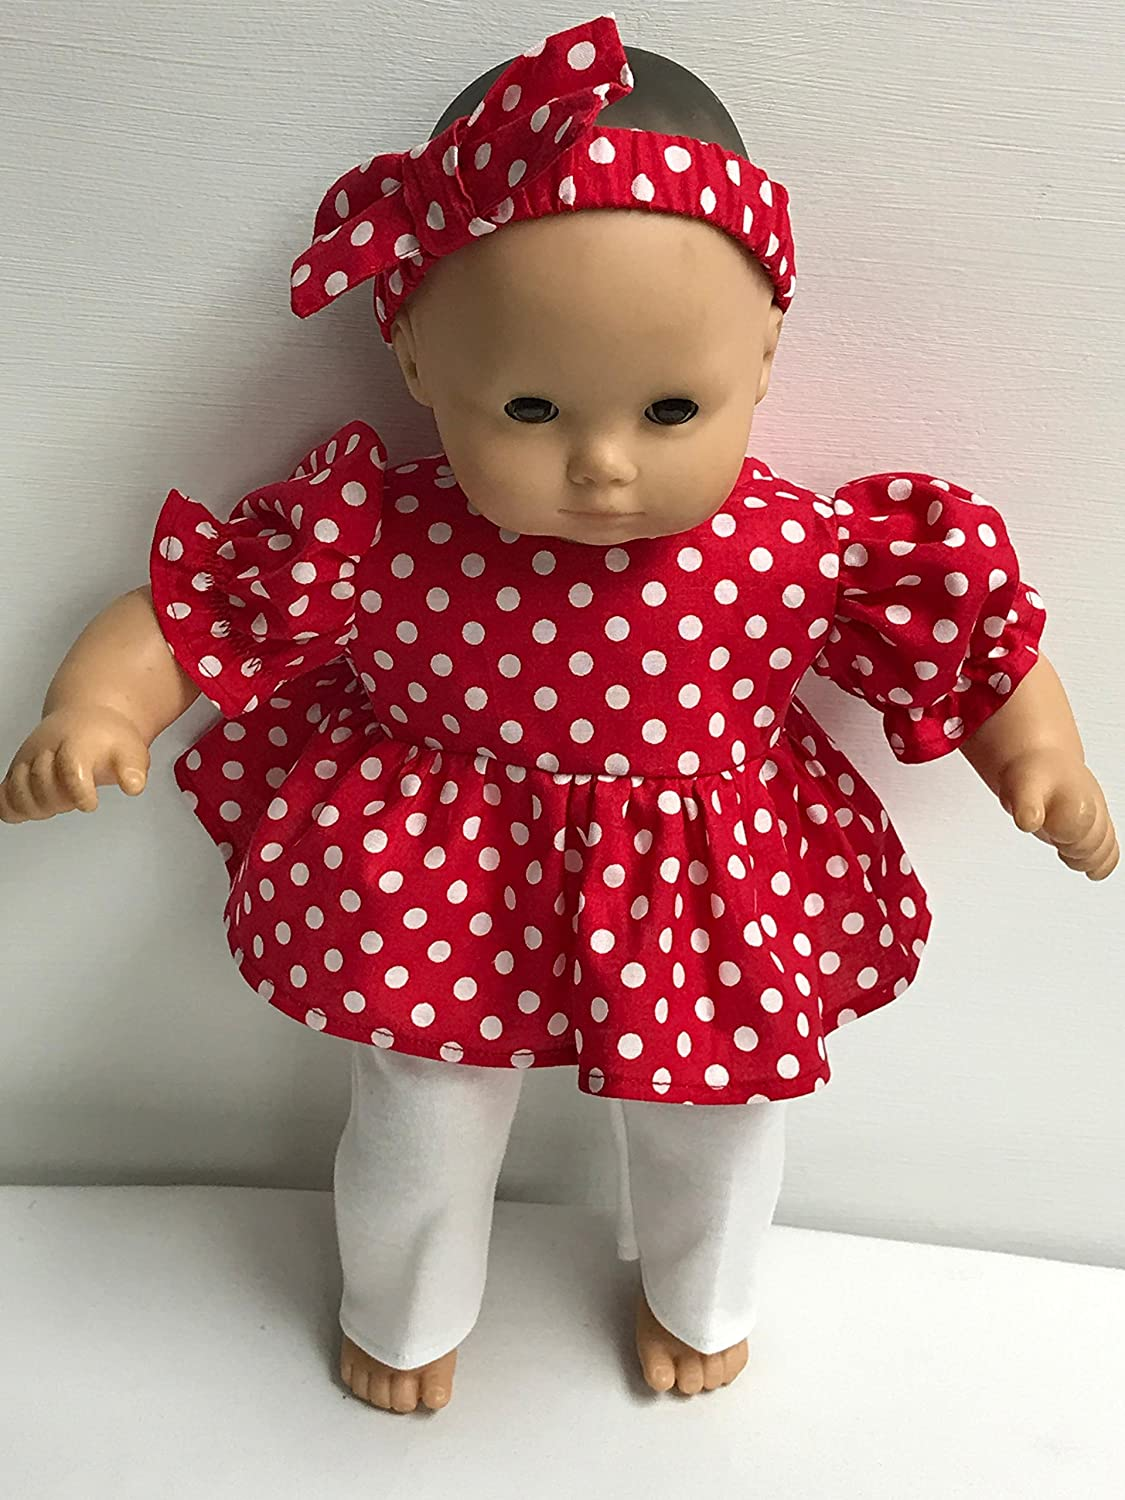 Red Polka Dot Doll Outfit for the American Girl 15 Bitty Baby